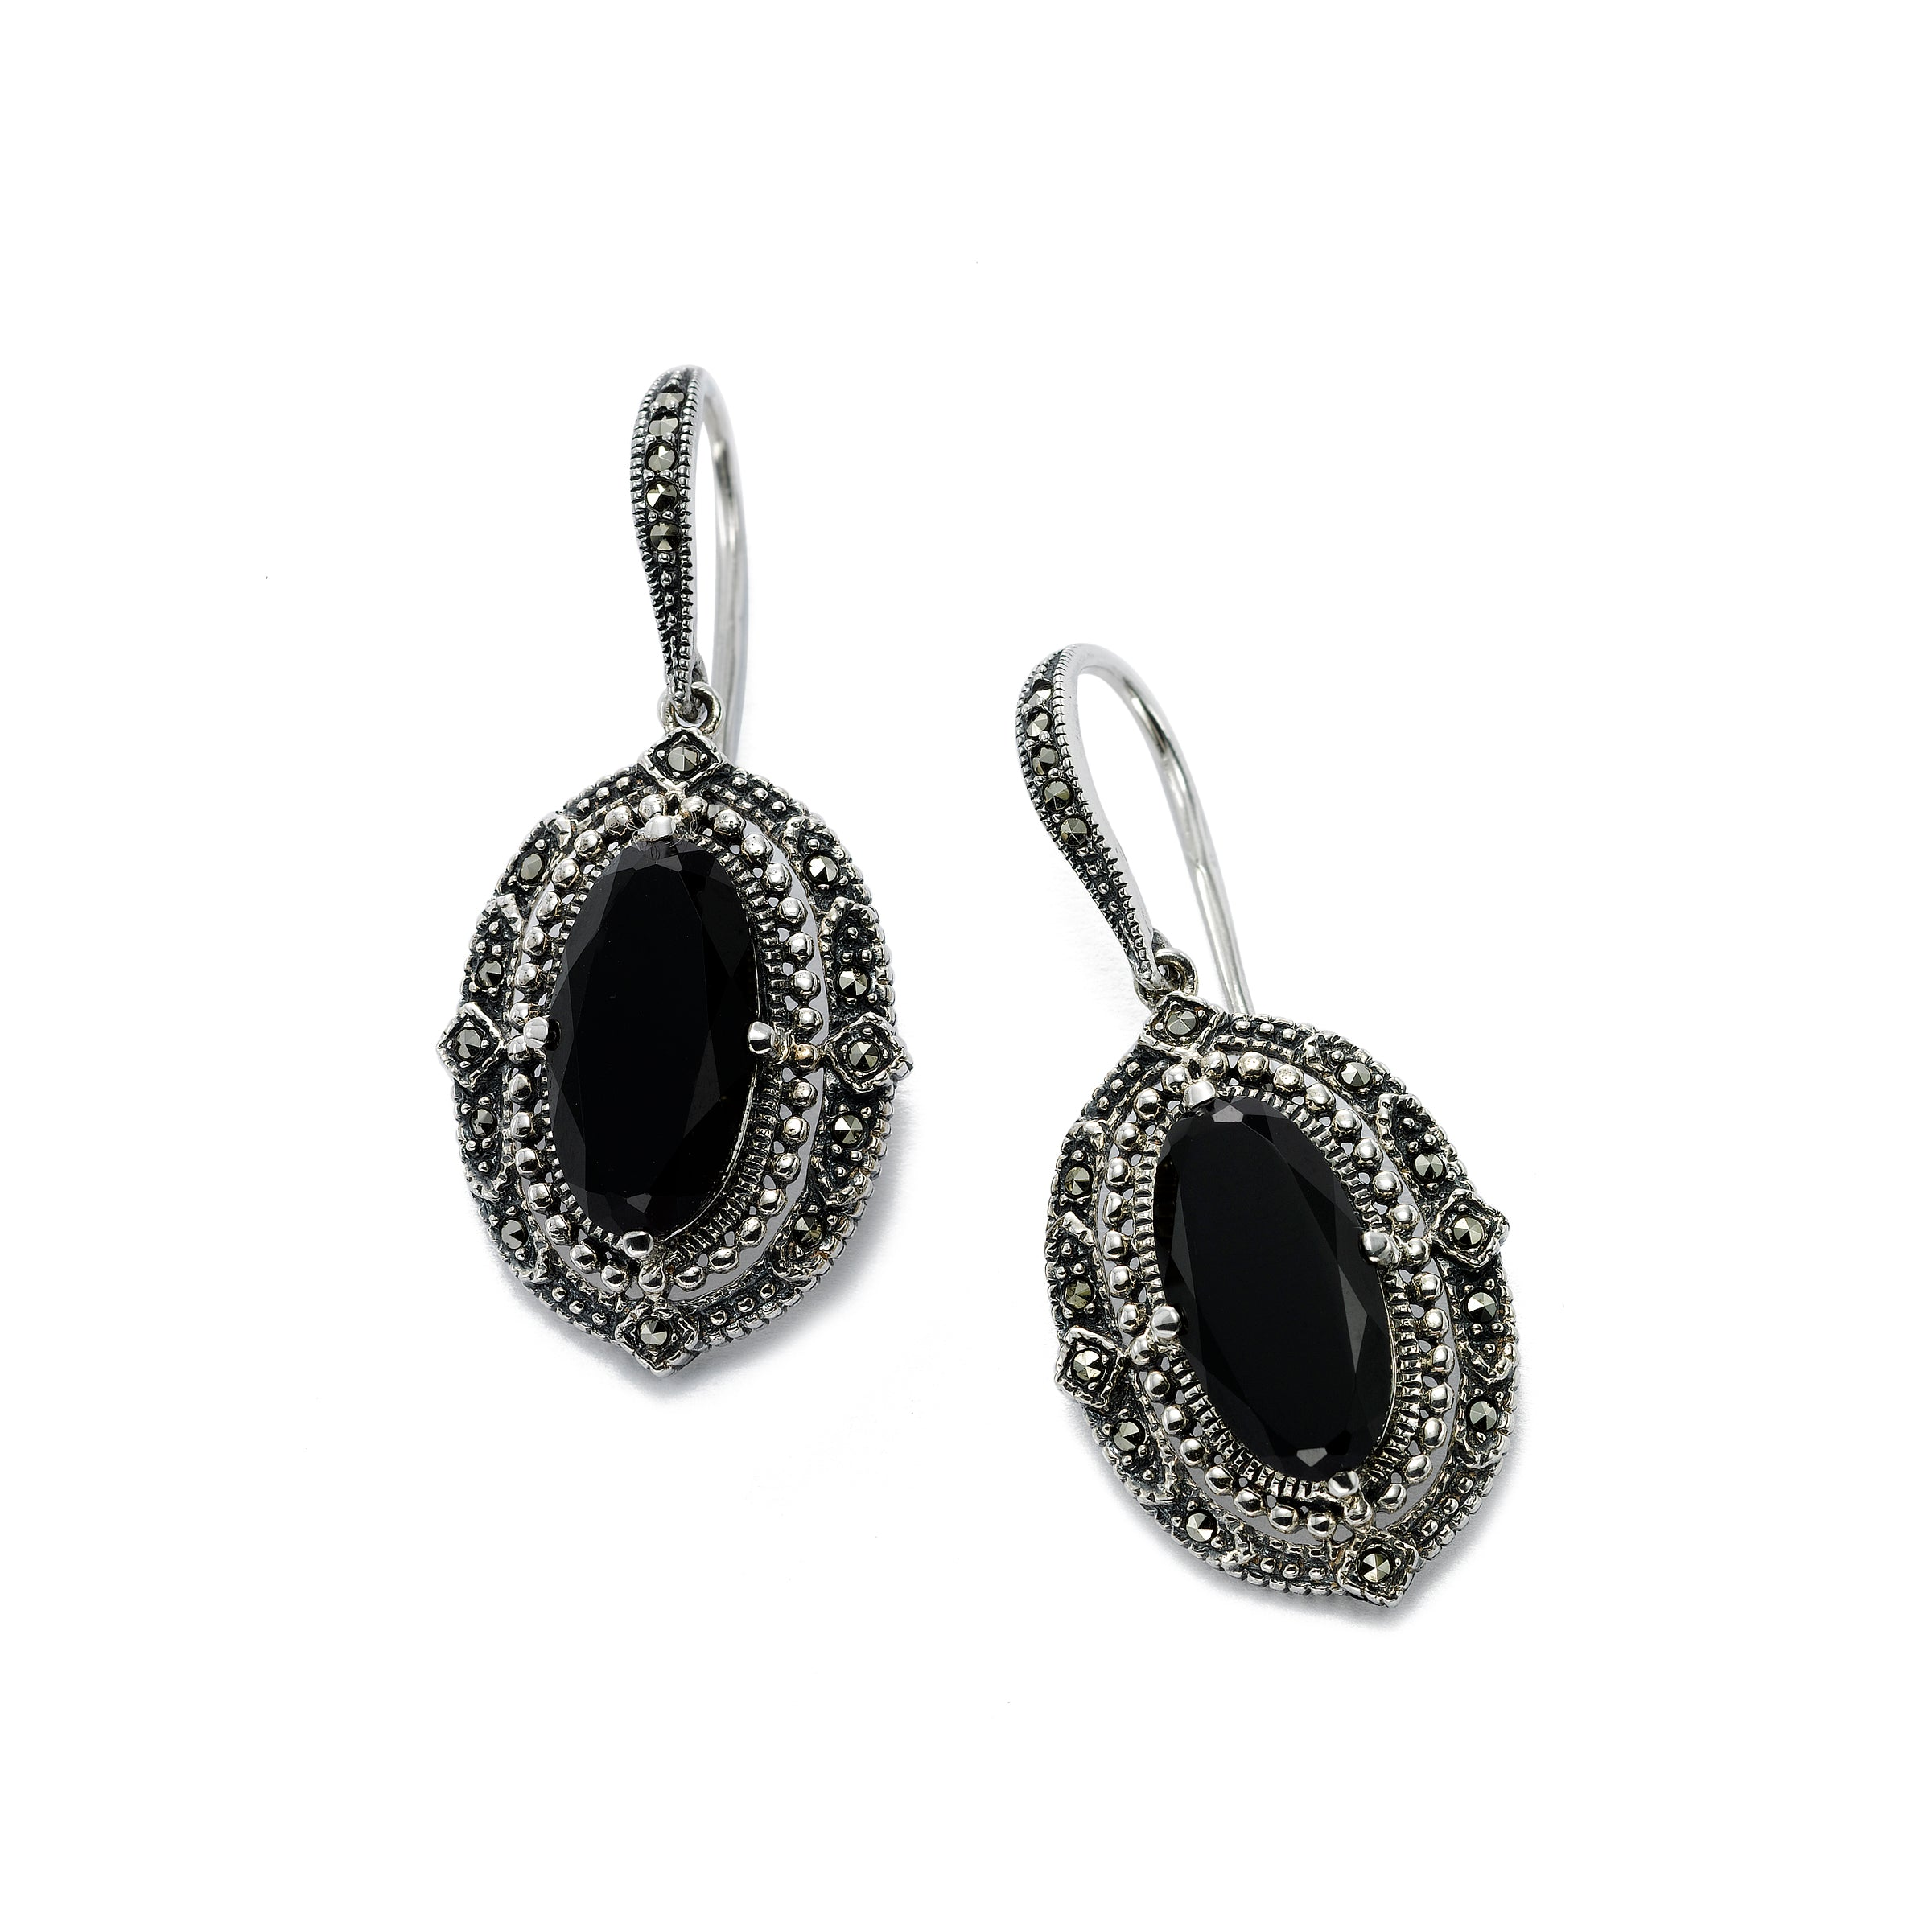 Swarovski Marcasite Earrings with Black Onyx, Sterling Silver